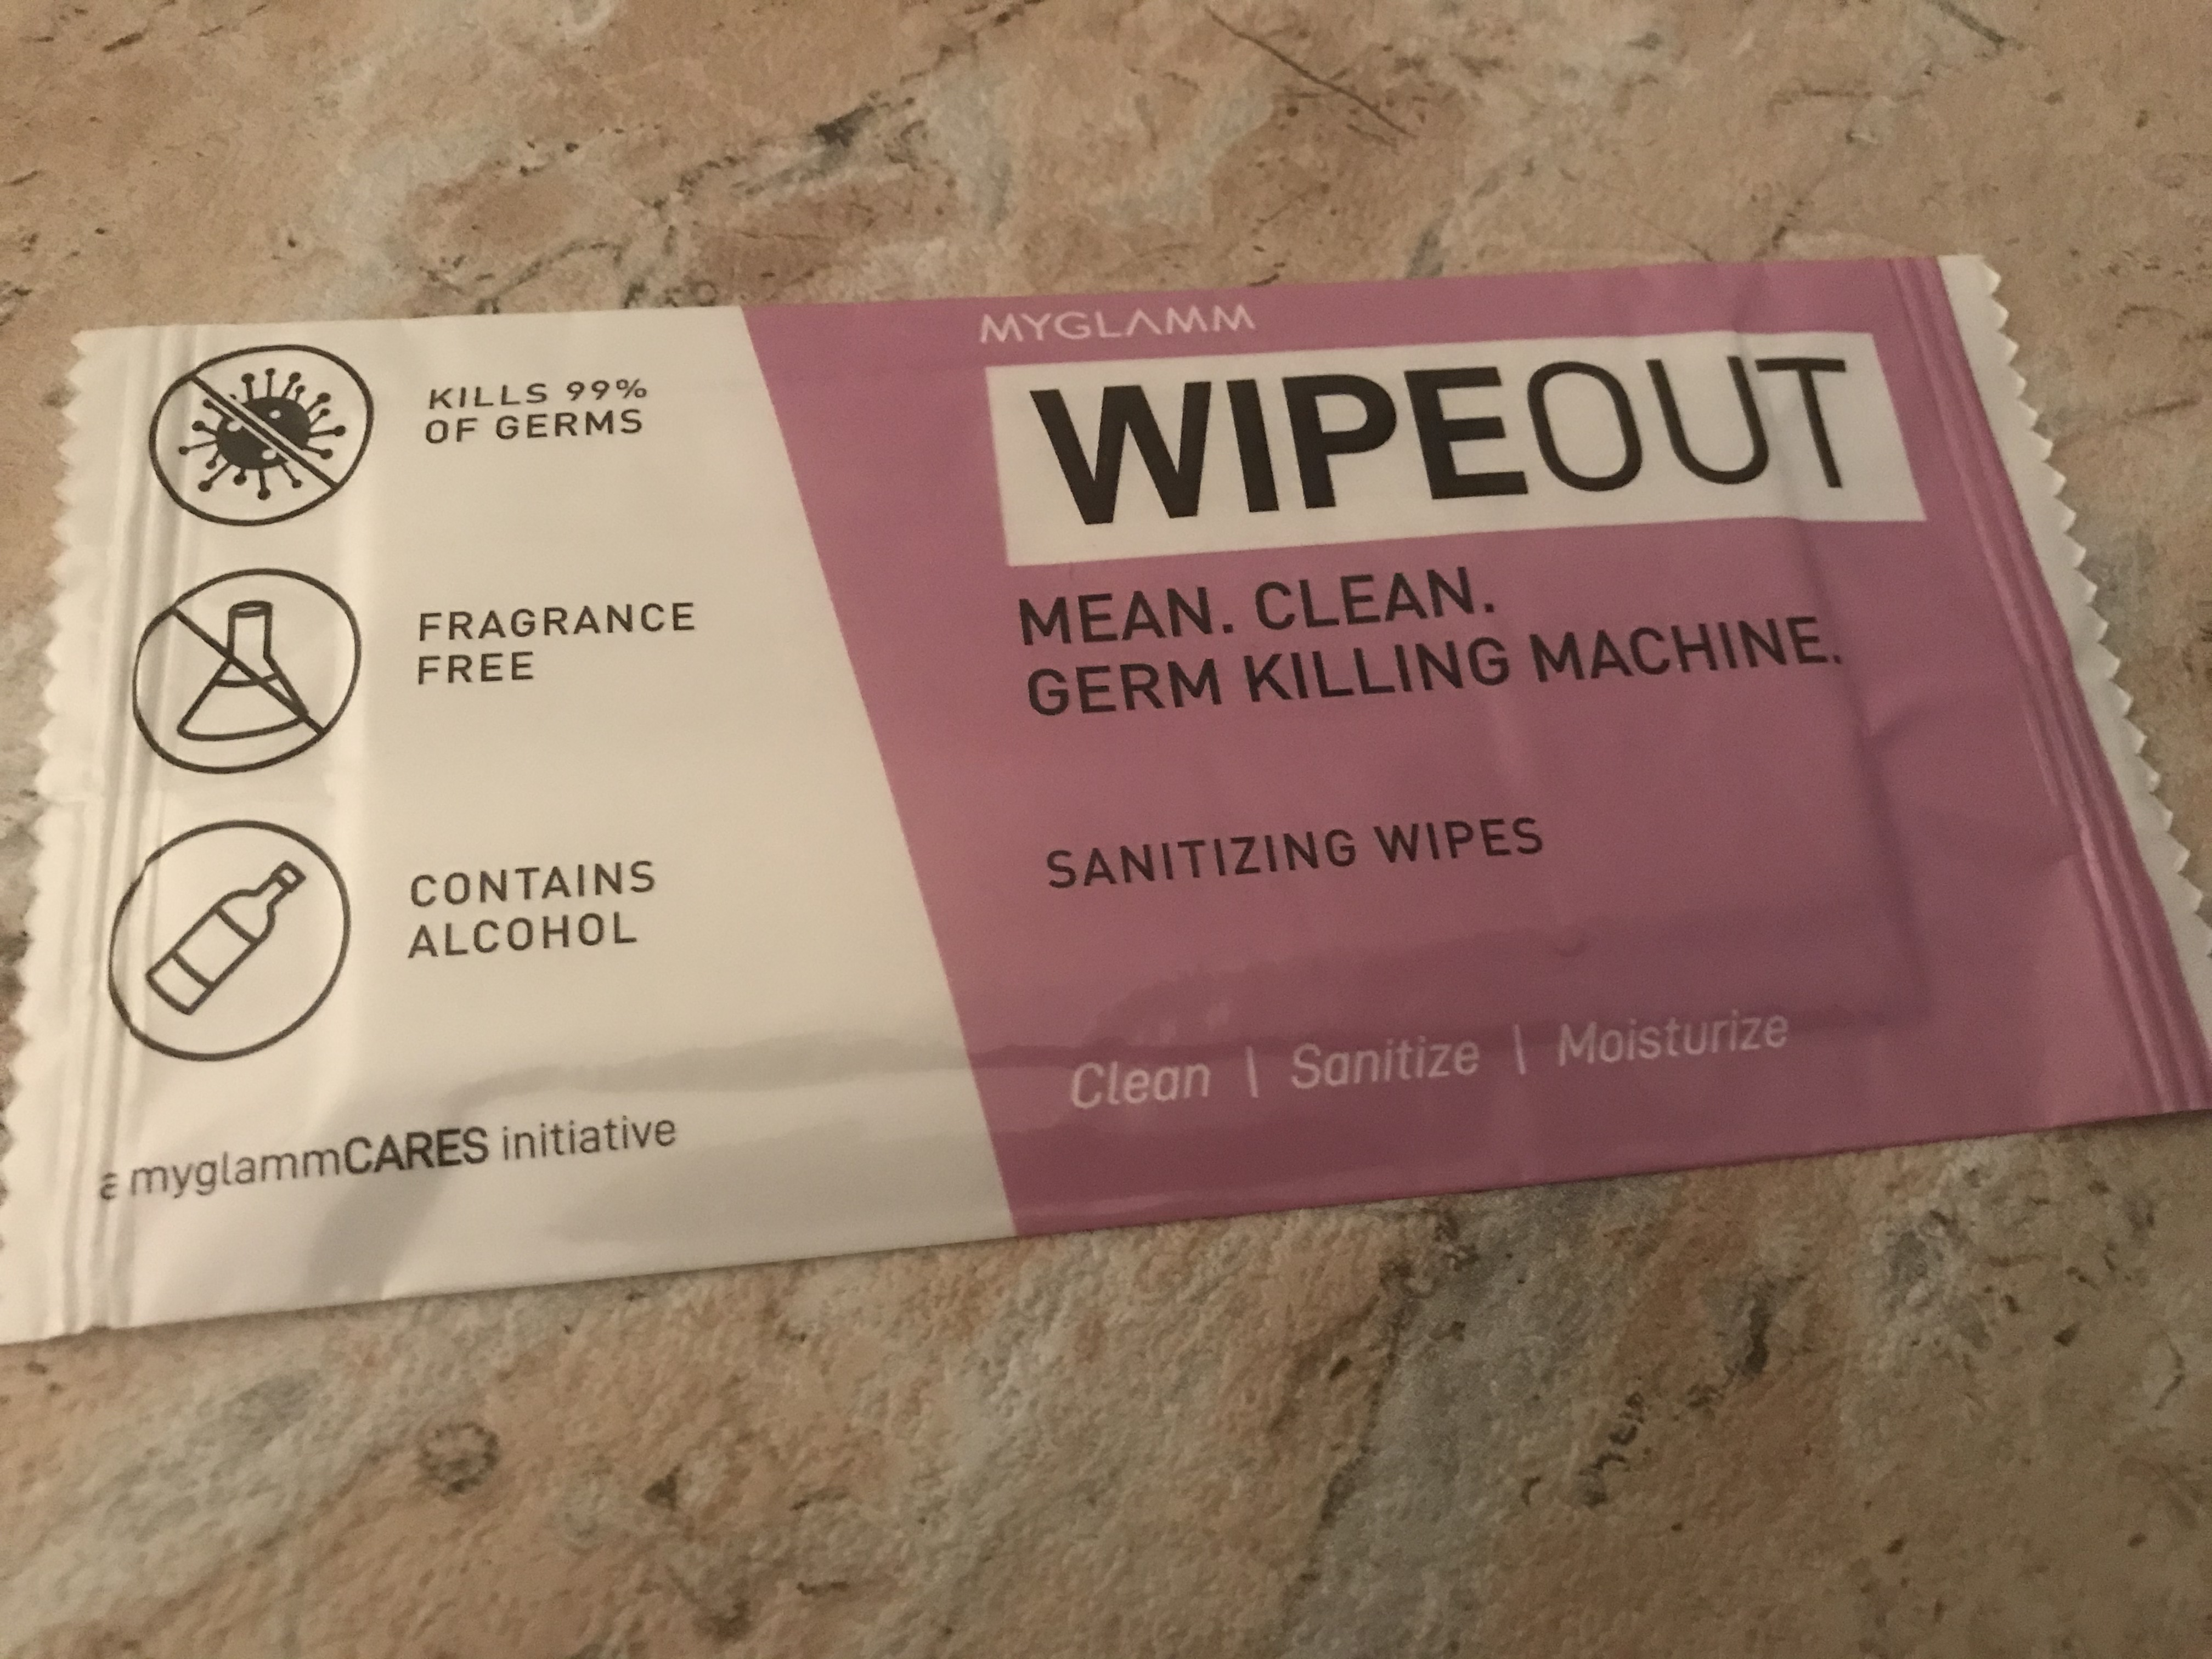 MyGlamm Wipeout Sanitizing Wipes-Kill the Germs-By womanofbeauty-2